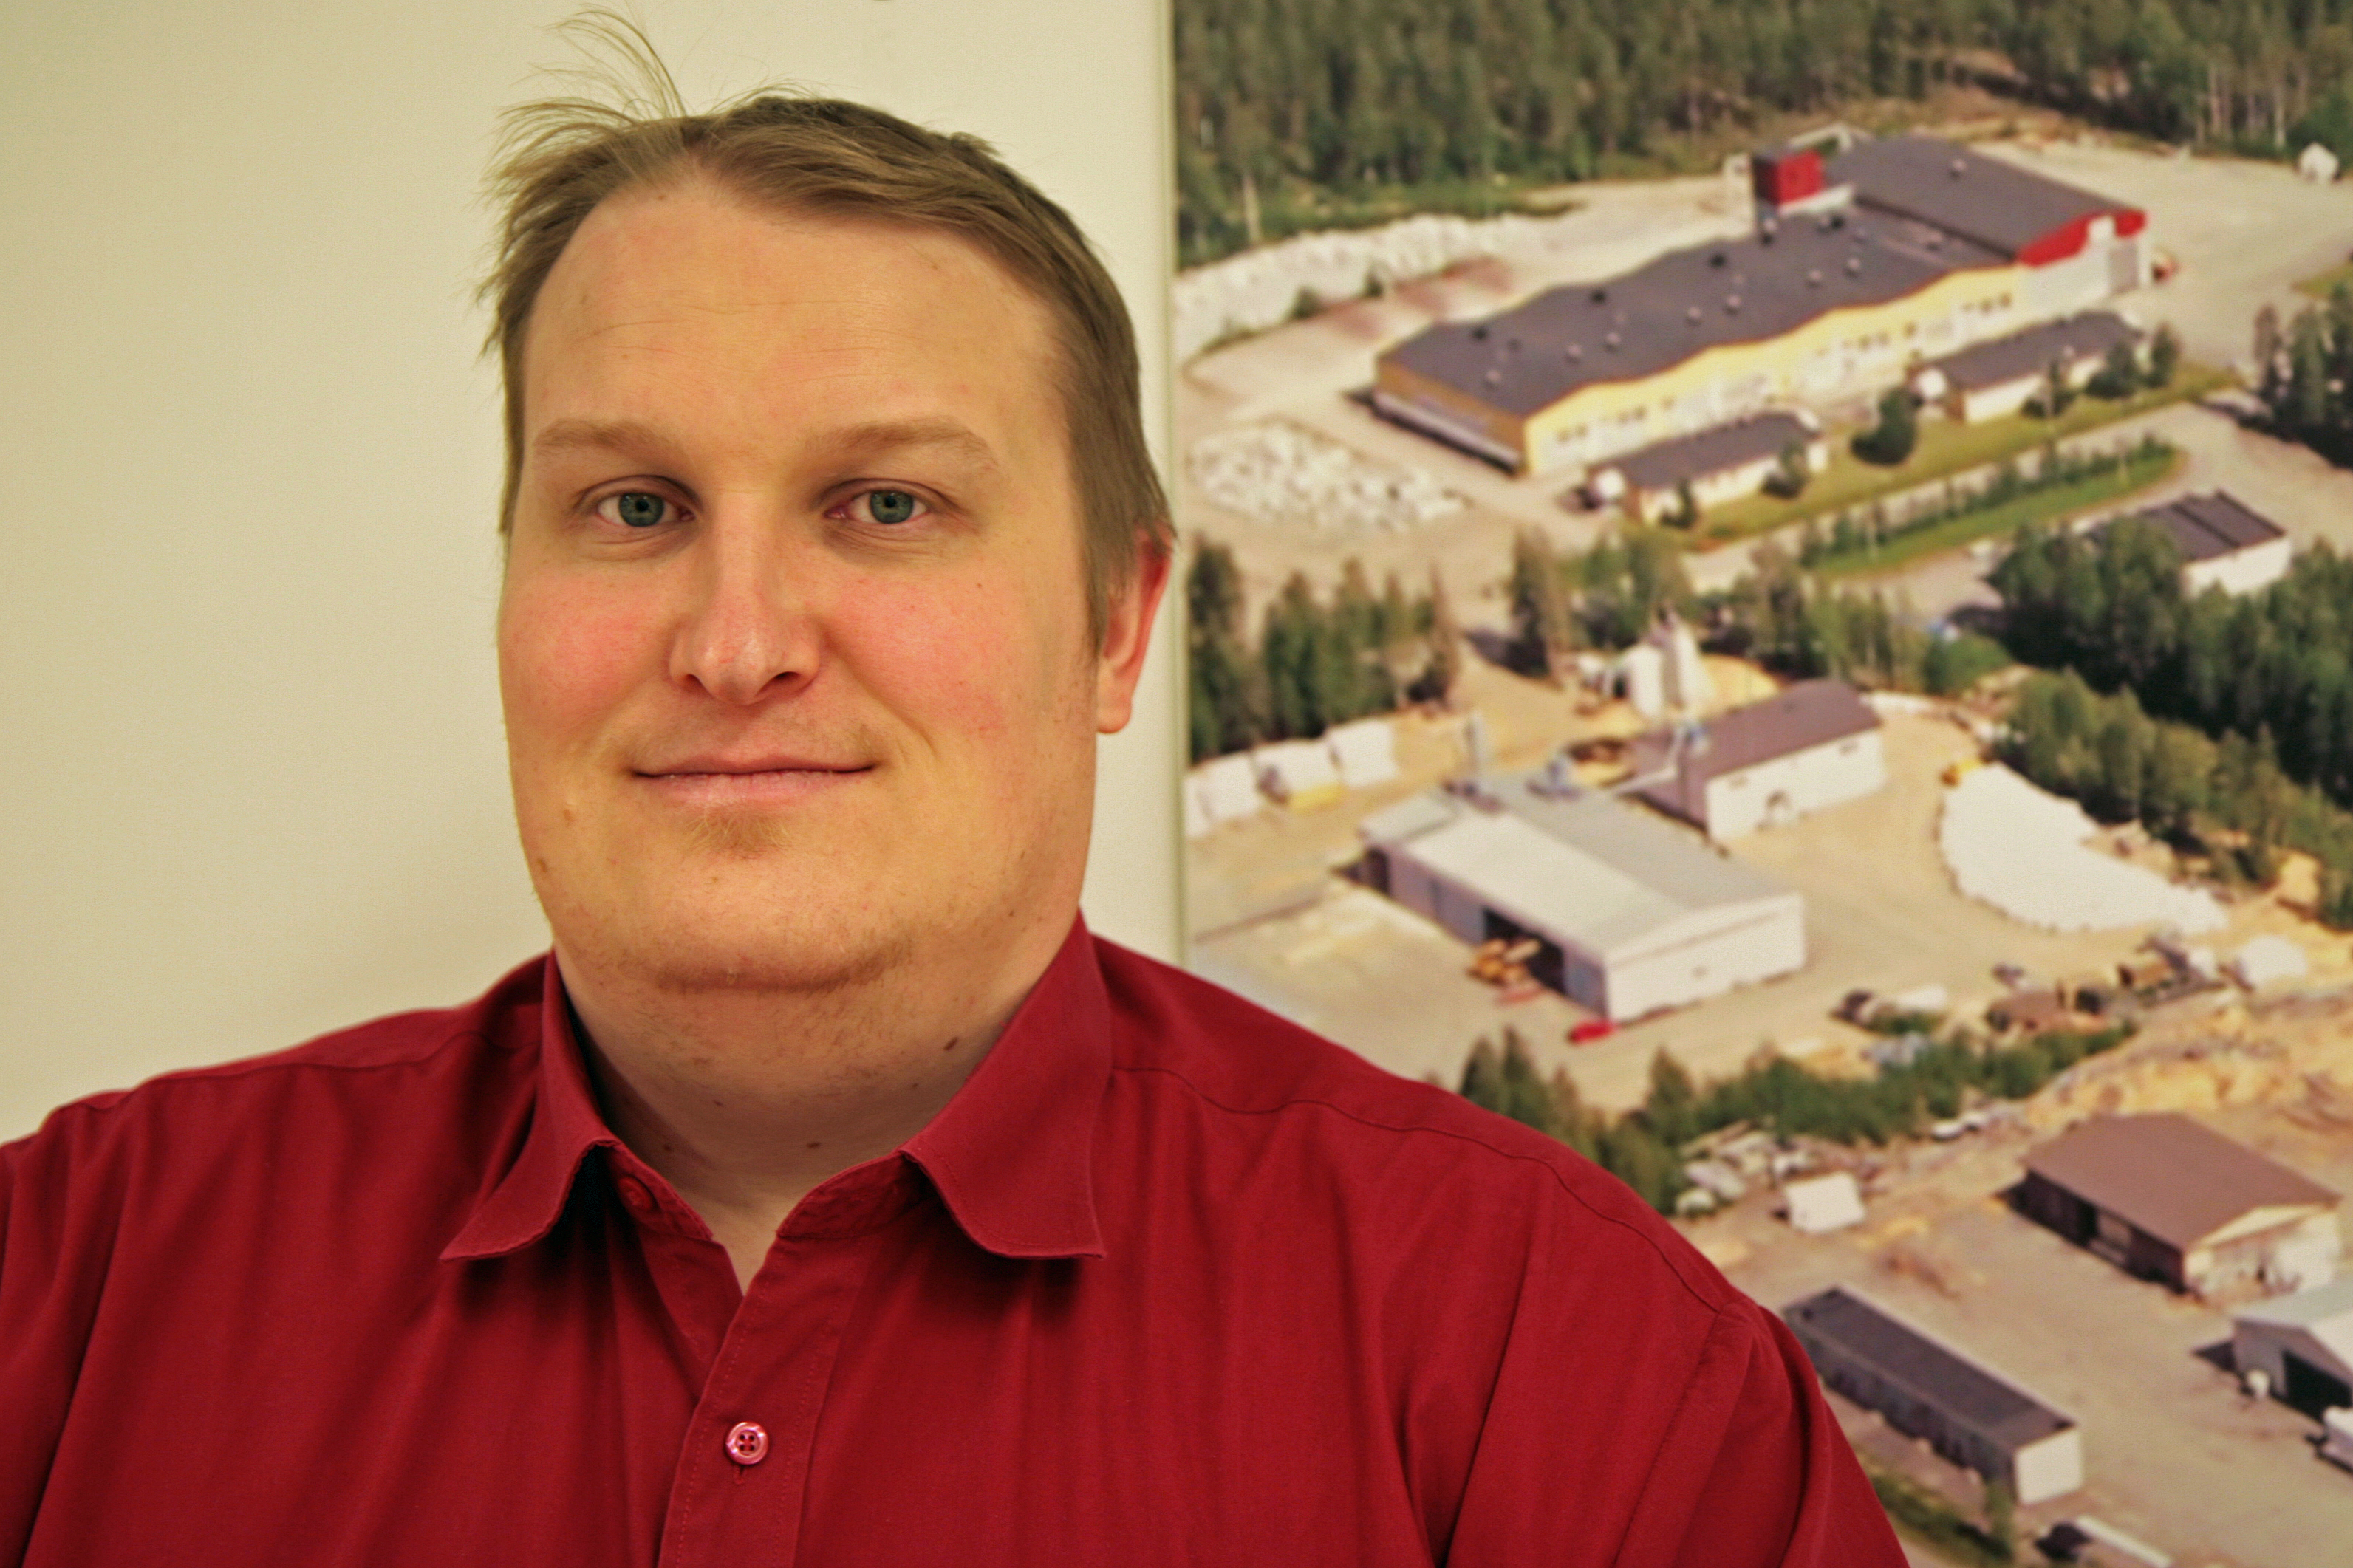 Tapani Kiiskinen, Development Director of the town of Kuhmo. Photo: Anna Kauppi